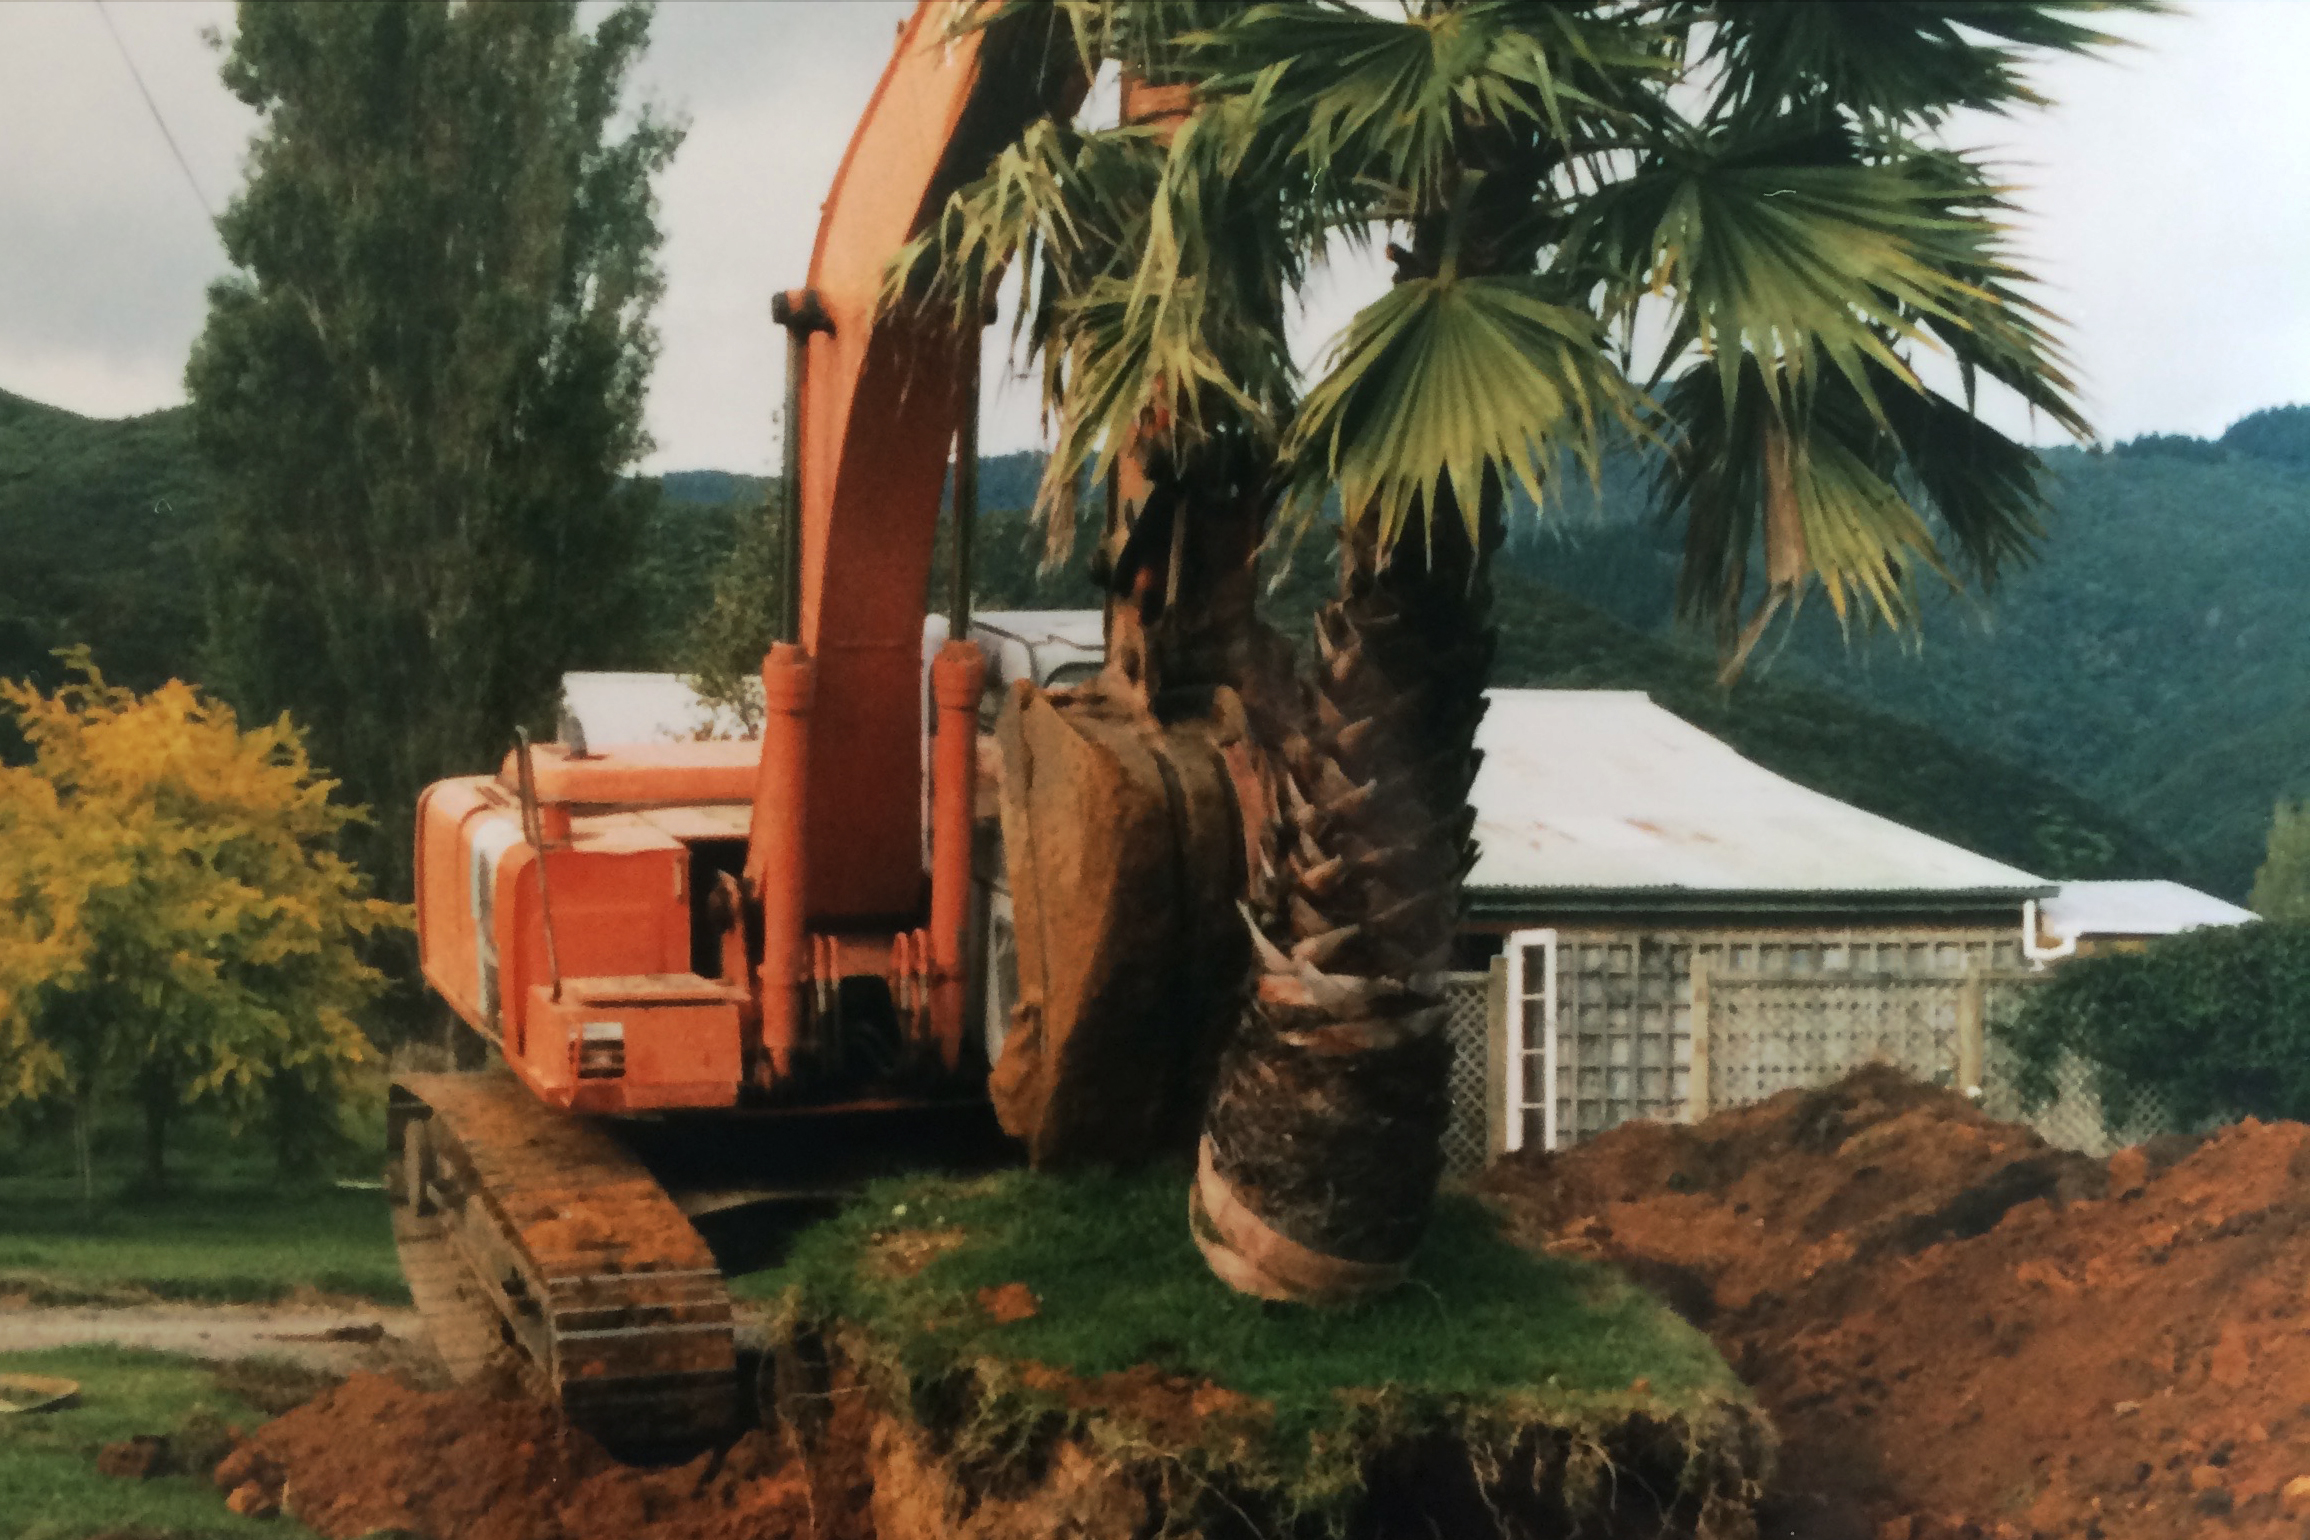 Excavation of palms to take to East Coast Point